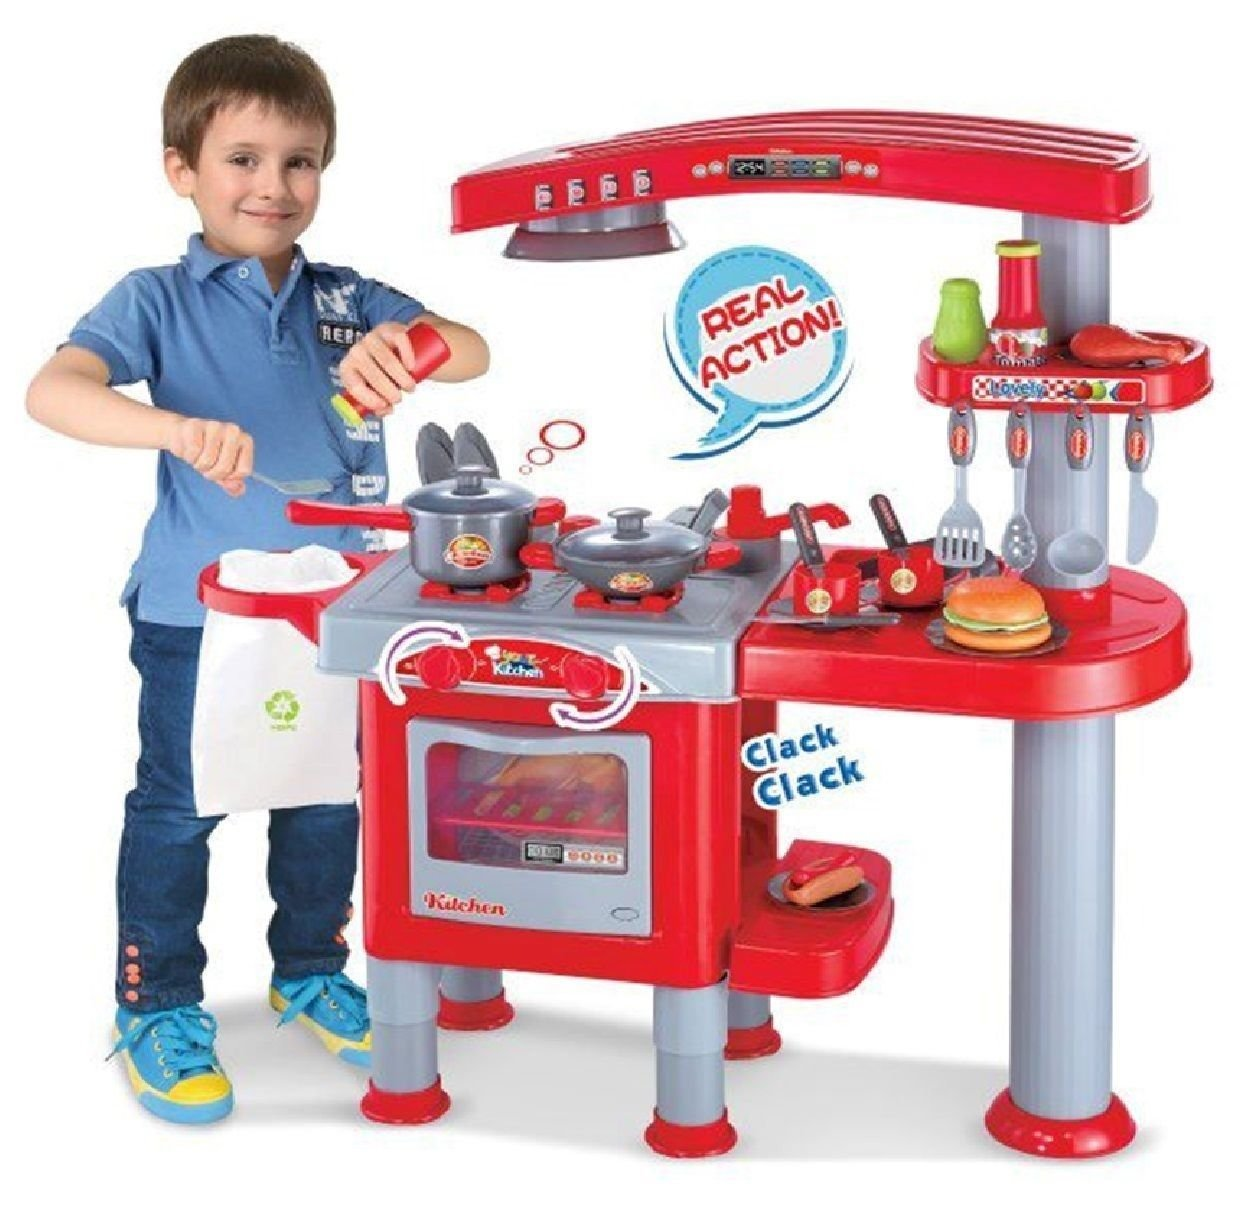 69PC LARGE CHILDRENS KIDS KITCHEN COOKING ROLE PLAY PRETEND TOY COOKER GAME SET Allkindathings